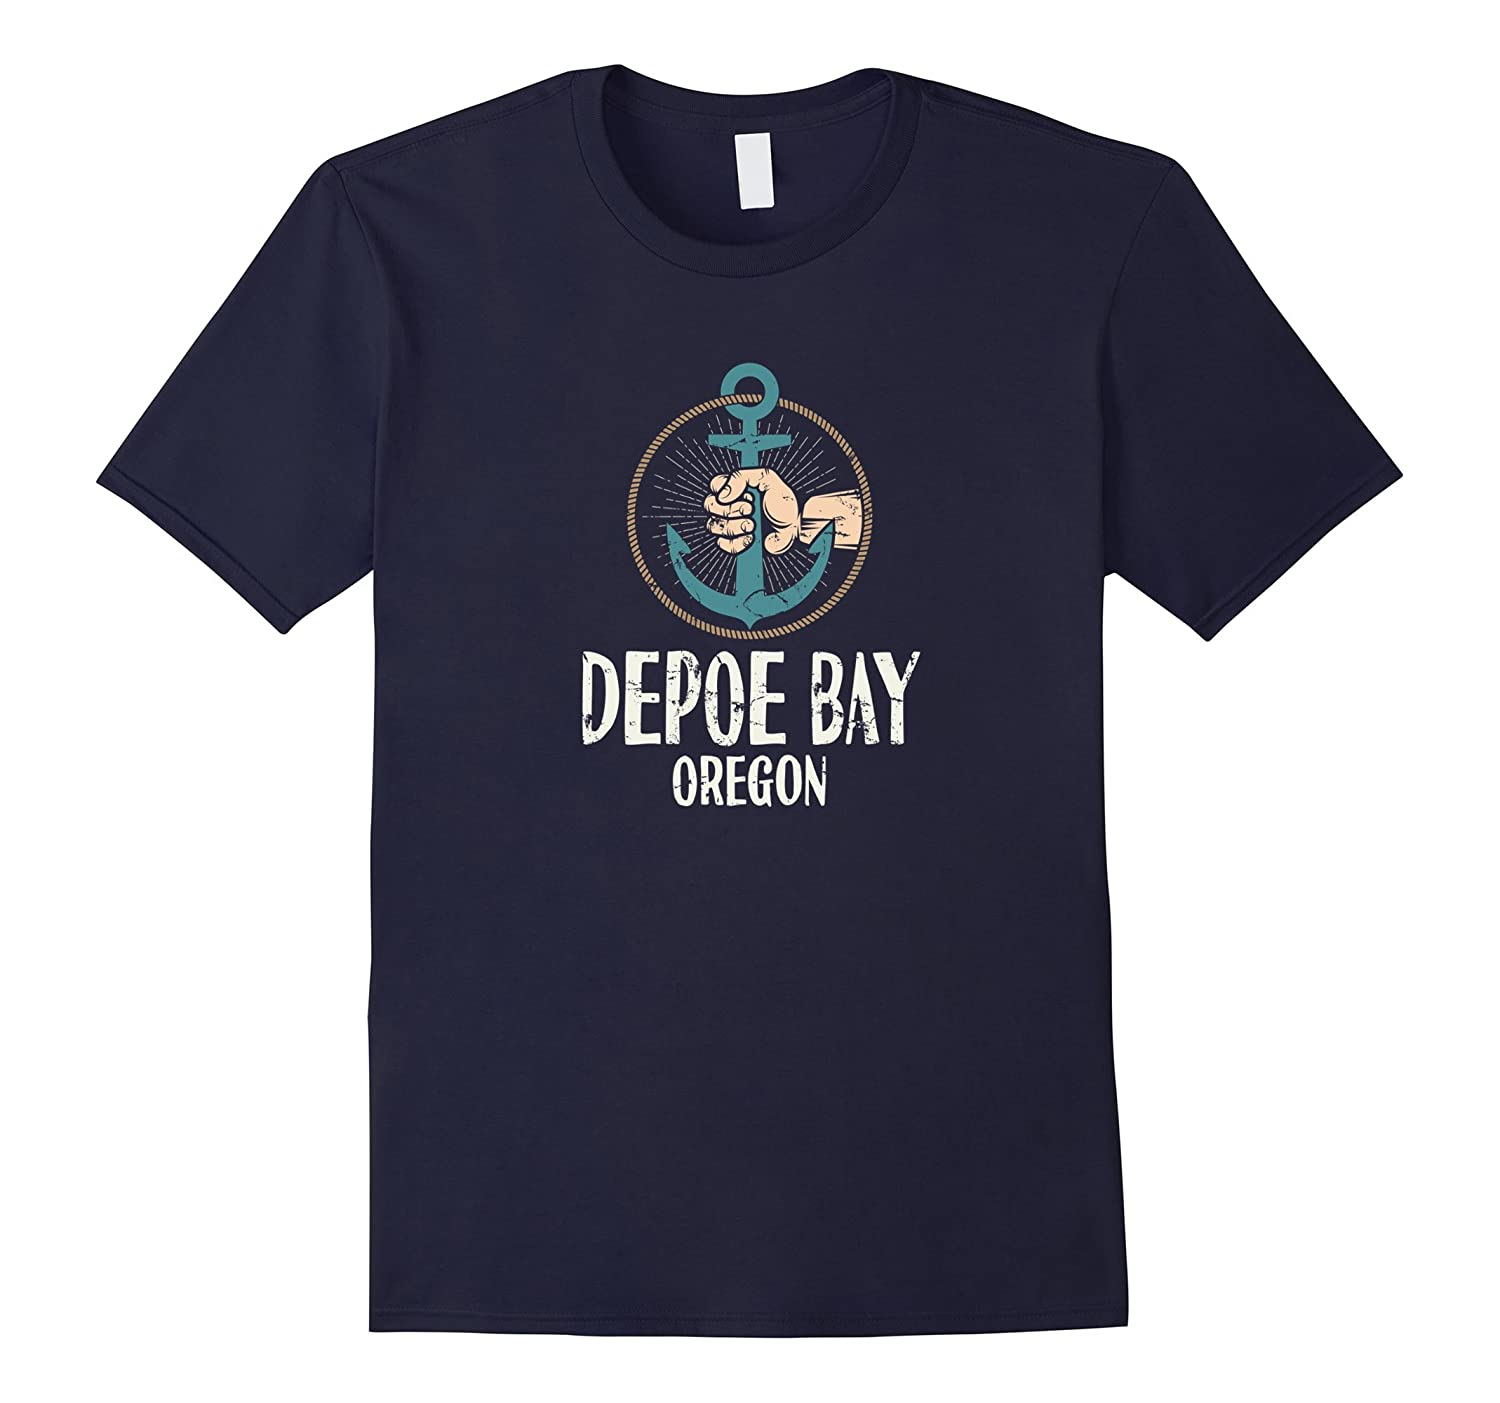 Depoe Bay Oregon Boat Anchor T-Shirt Distressed-FL